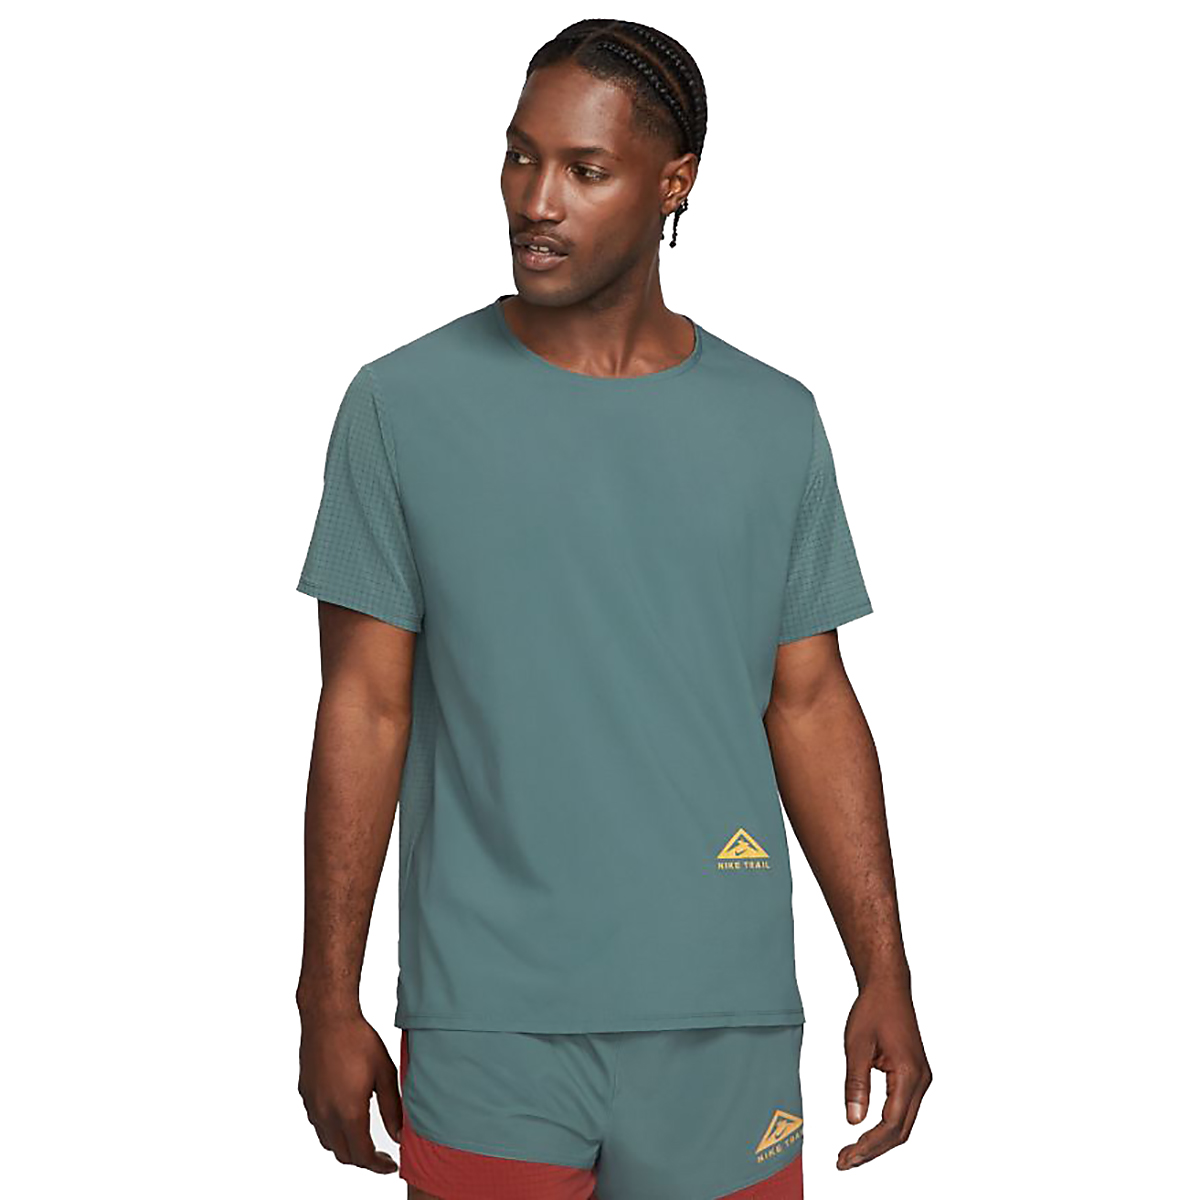 Men's Nike Dri-FIT Rise 365 Short-Sleeve Trail Running Top - Color: Hasta/Reflective Silver - Size: S, Hasta/Reflective Silver, large, image 1